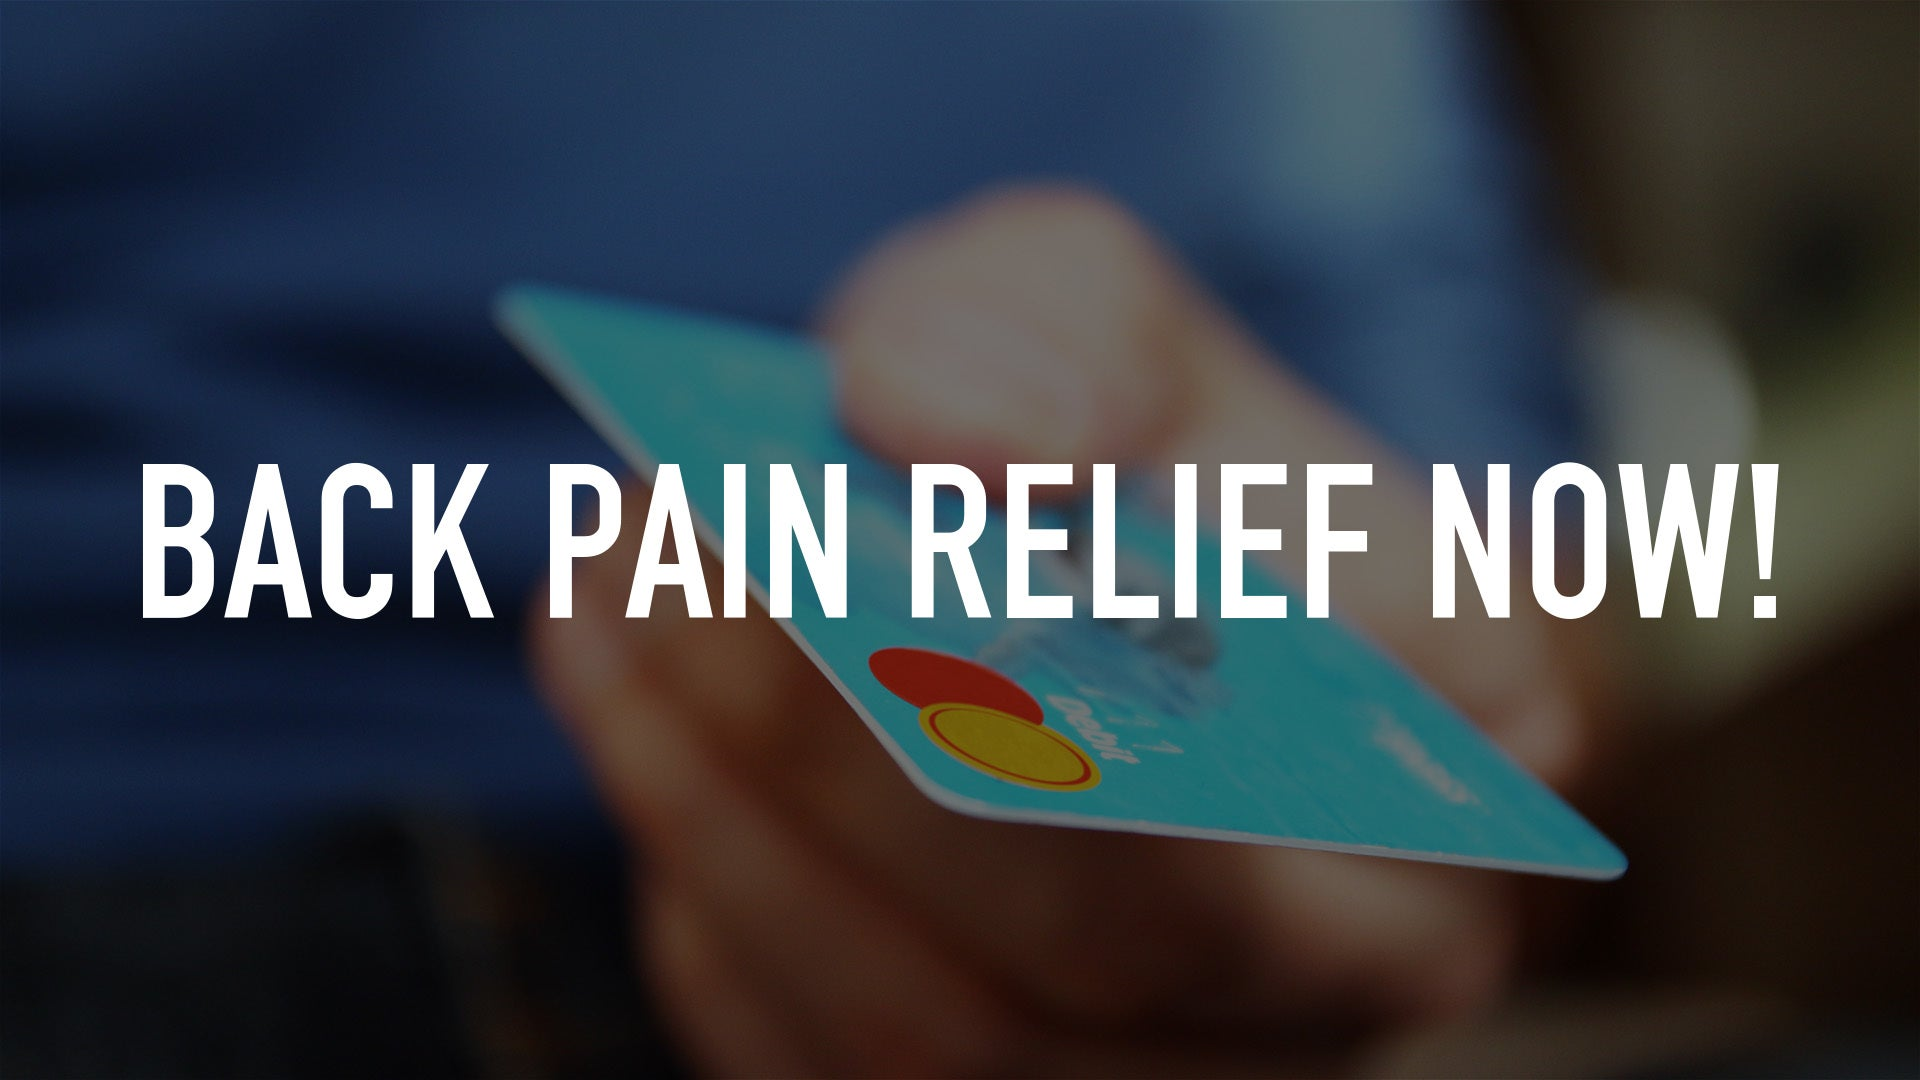 BACK PAIN RELIEF NOW!